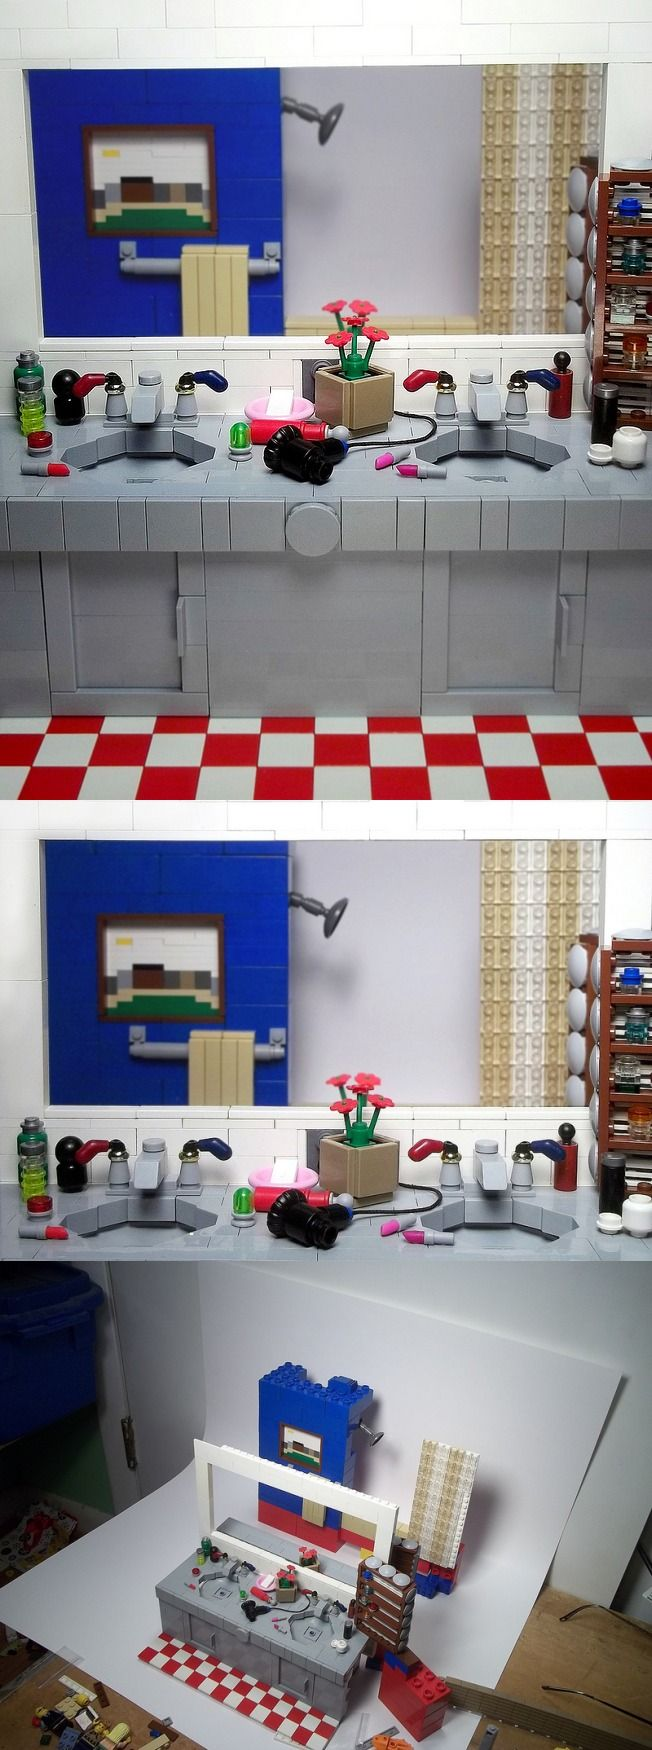 Best Images About Lego Interior Designs On Pinterest - Lego house interior